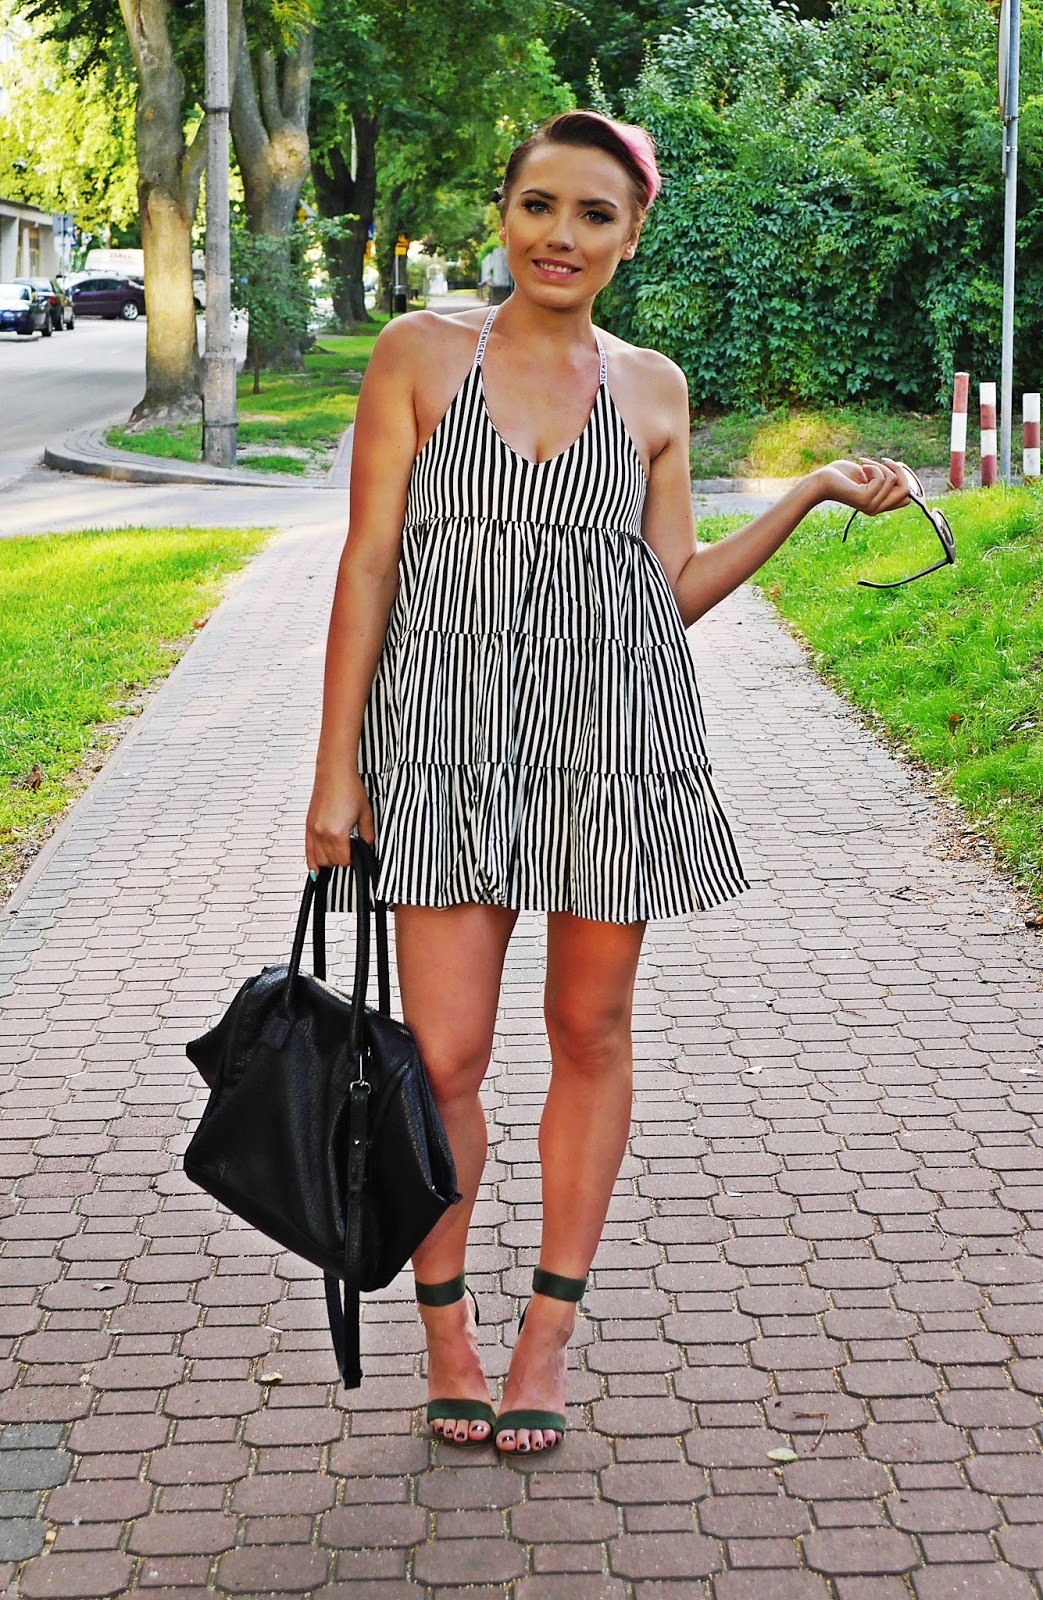 stripes_dress_green_heels_ootd_look_karyn_blog_010817d